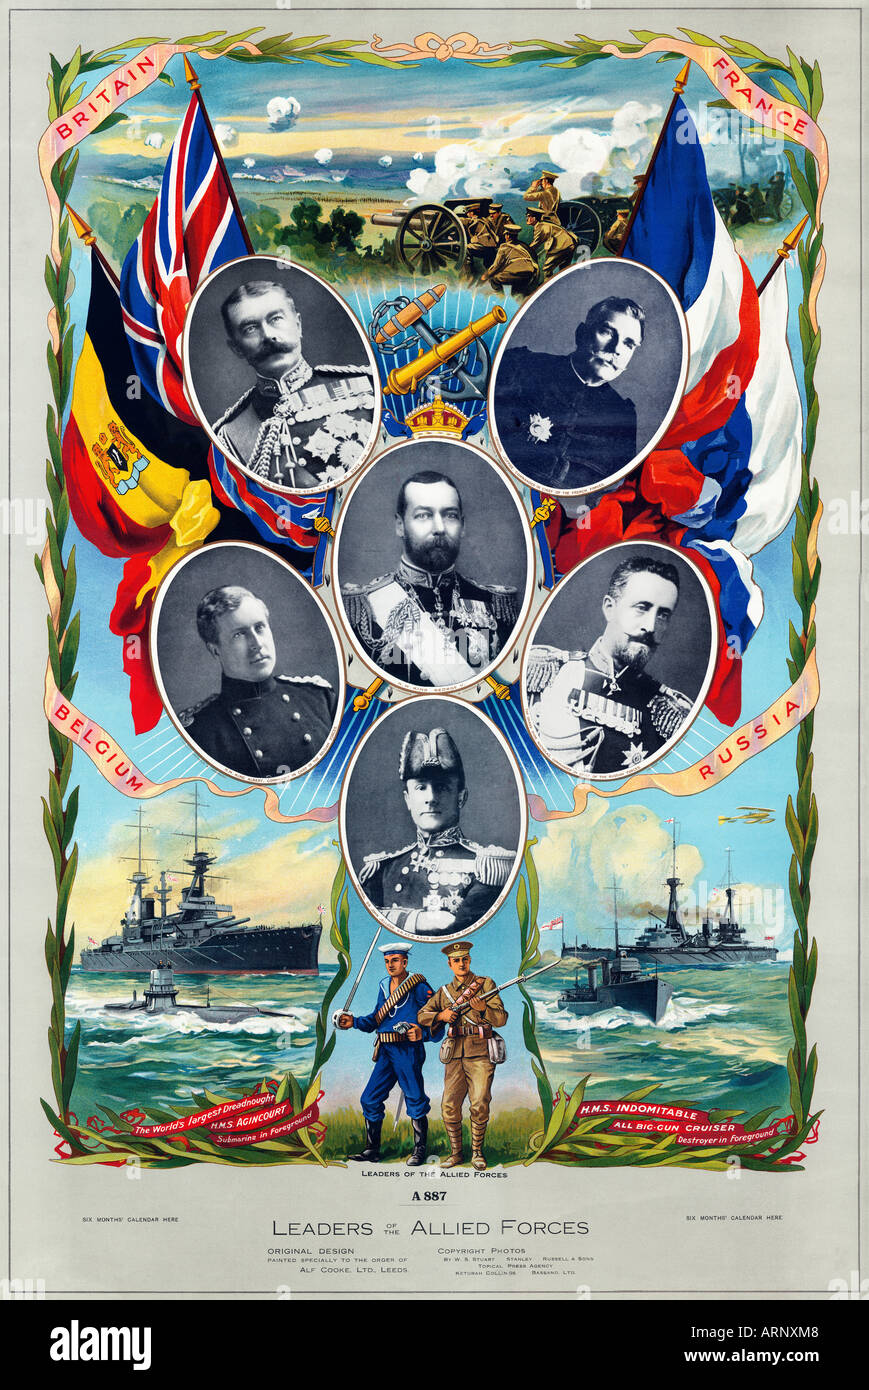 Allied Leaders Of WWI early Great war poster of the leaders of the forces of the four main allies around King George V - Stock Image